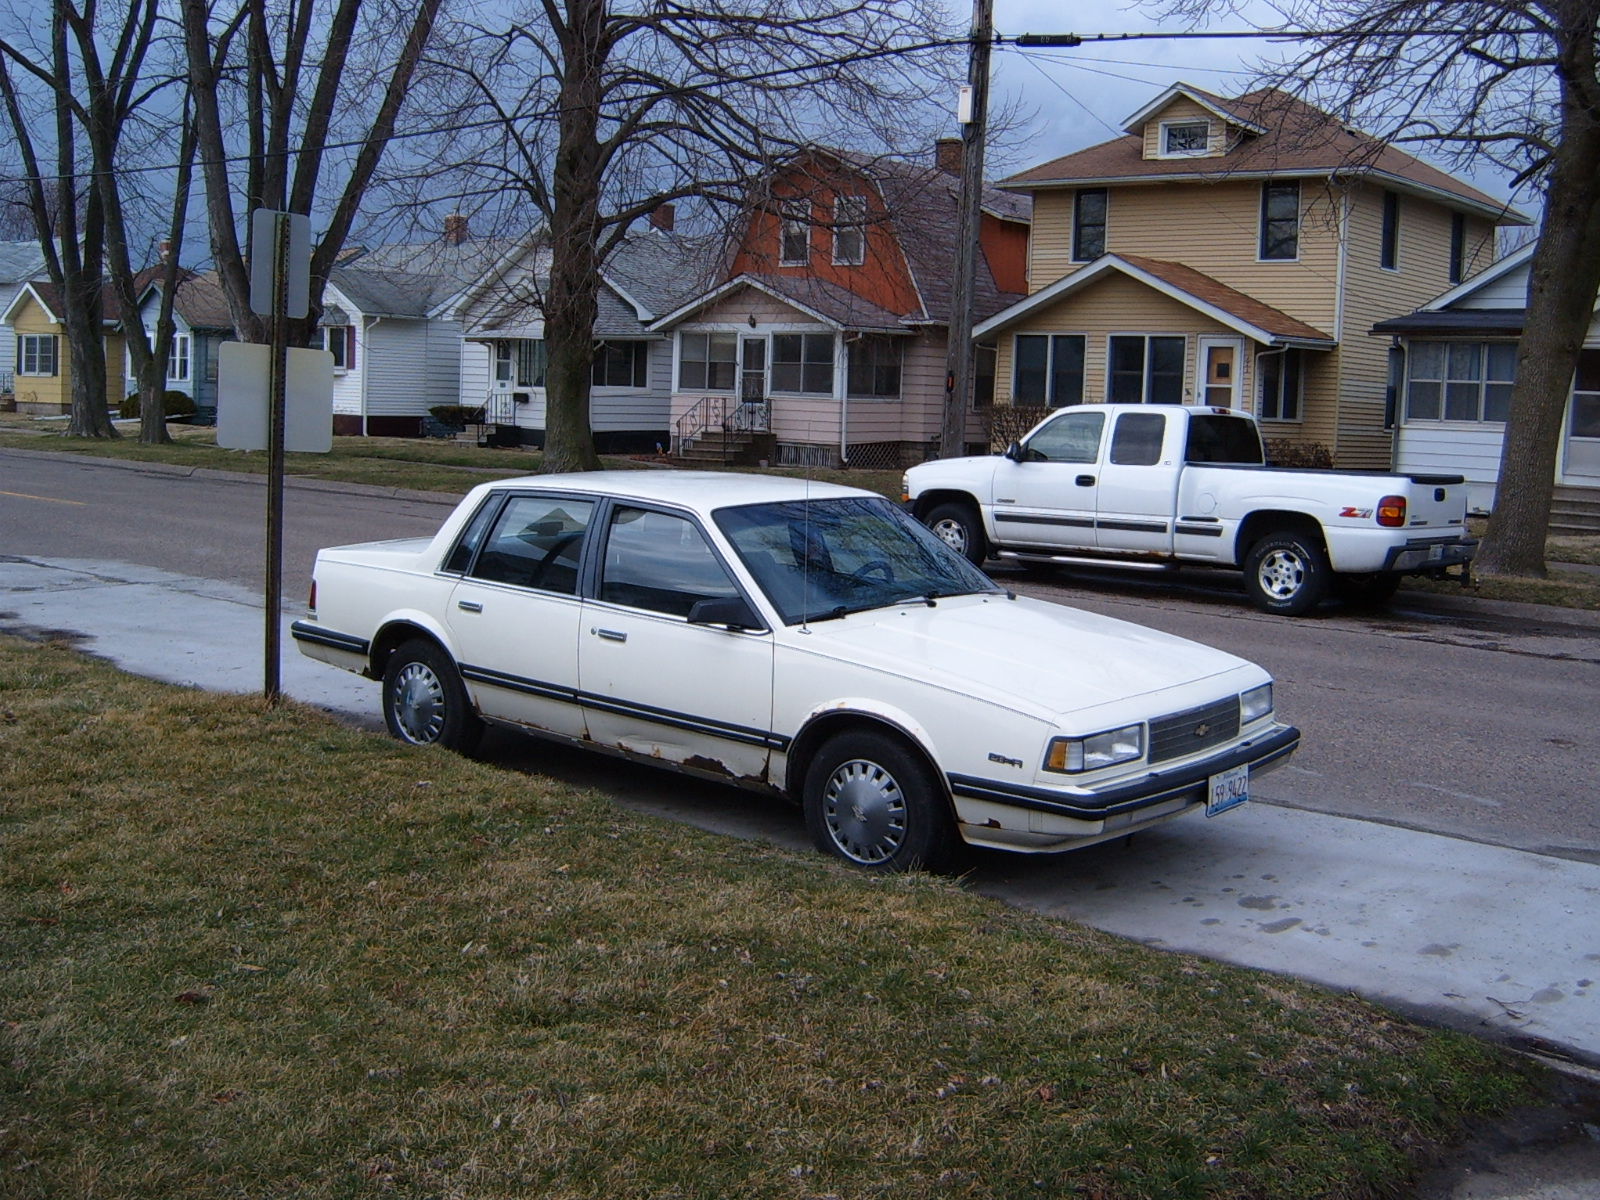 1988 chevy celebrity Pictures, Images & Photos | Photobucket